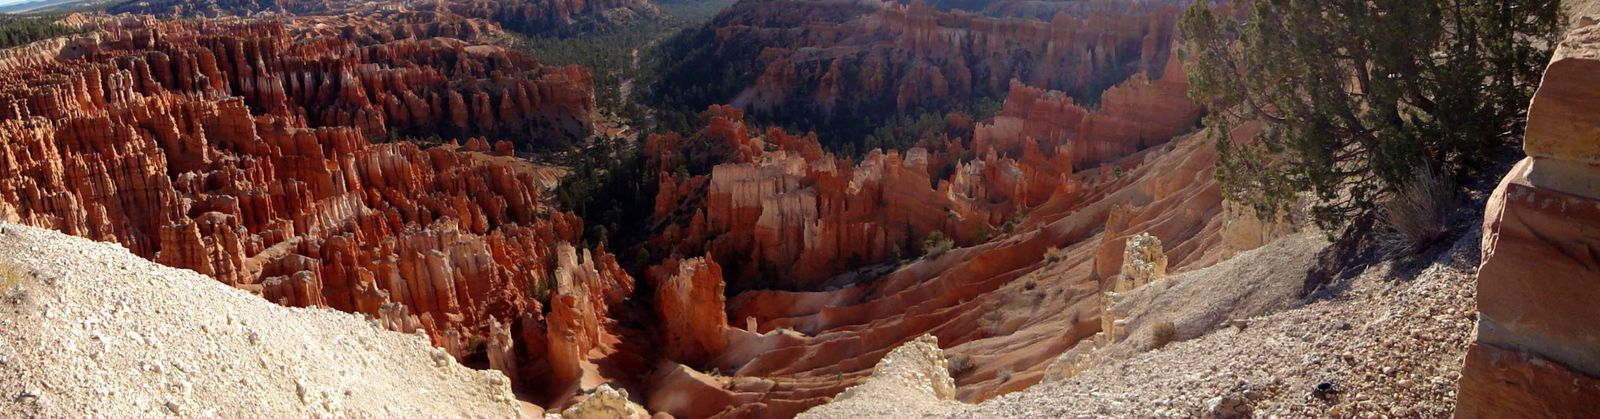 Bryce-canyon-1-panorama-2